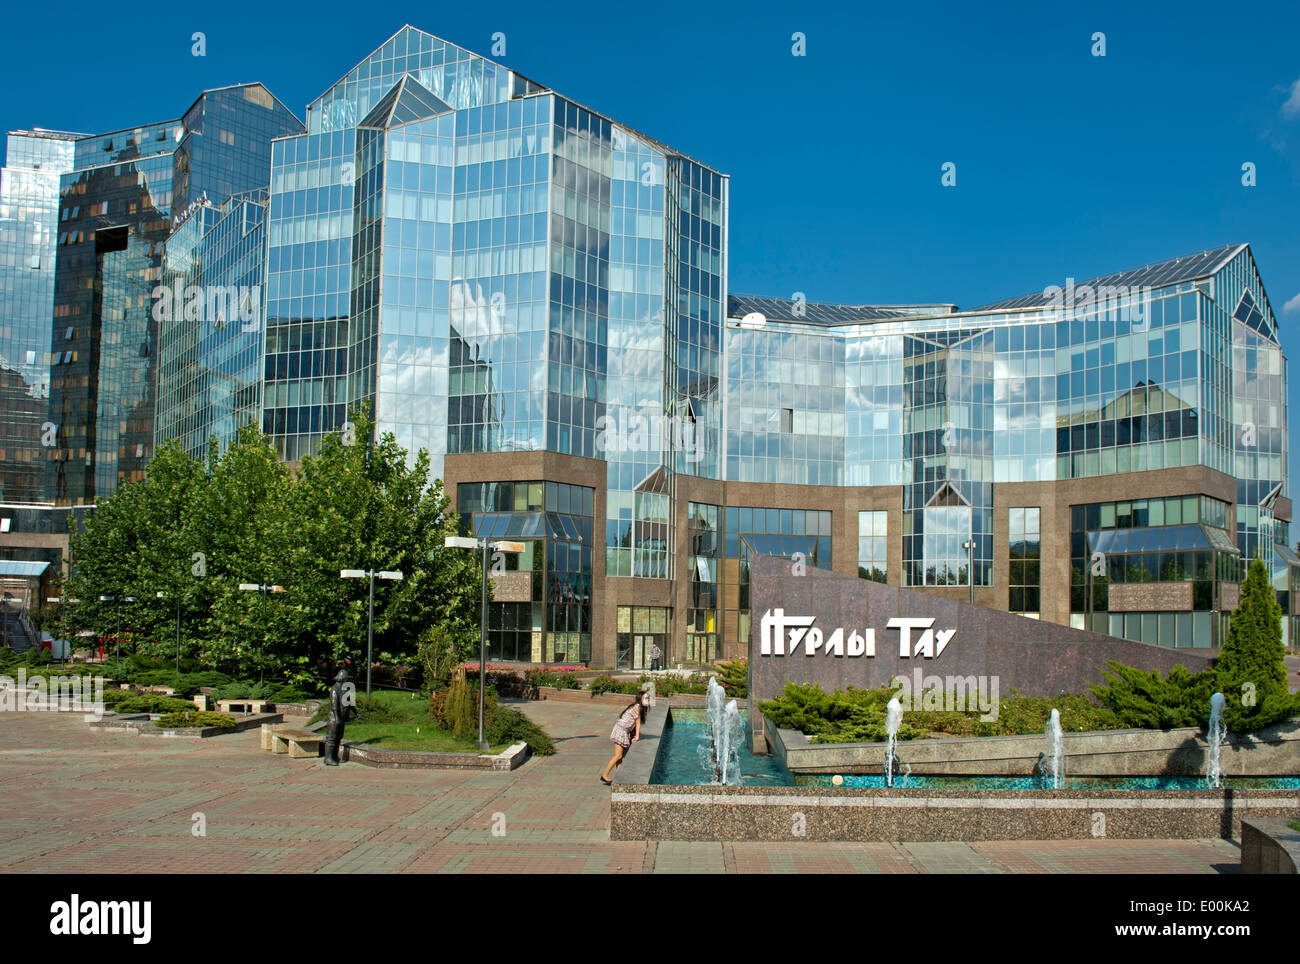 Nurly Tau Business Center at the Al-Farabi Avenue, Bostandyksky District, Almaty, Kazakhstan - Stock Image